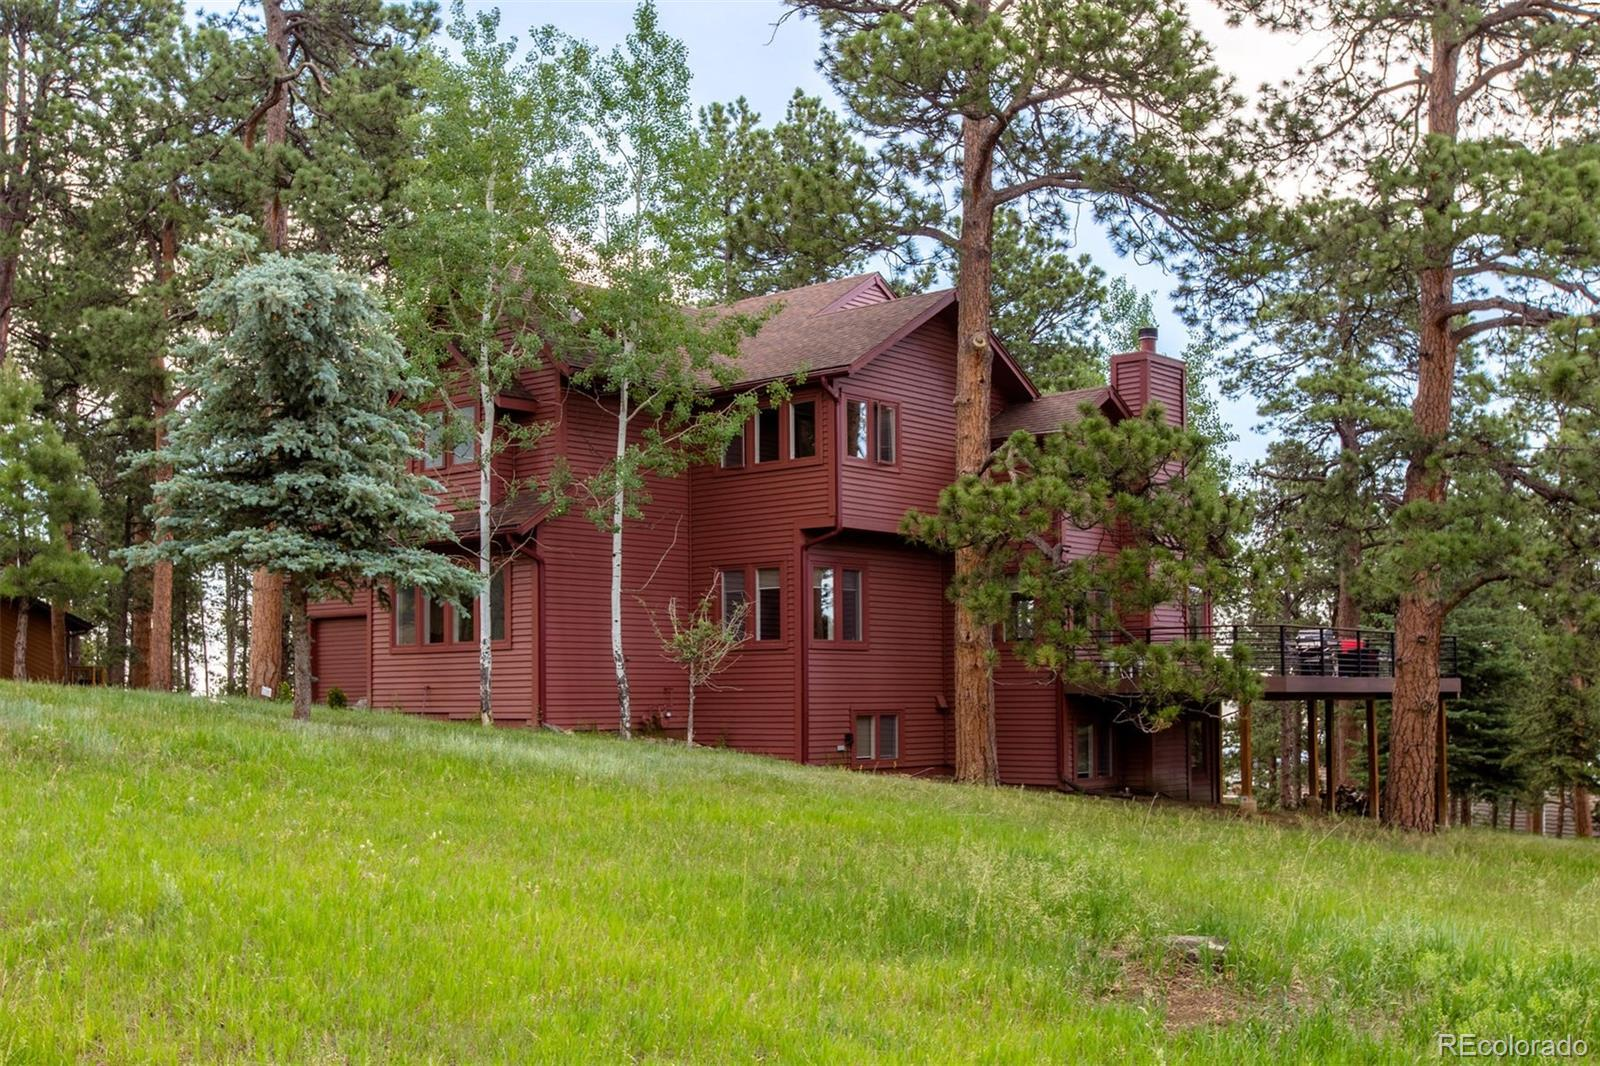 MLS# 7345435 - 34 - 23535 Currant Drive, Golden, CO 80401